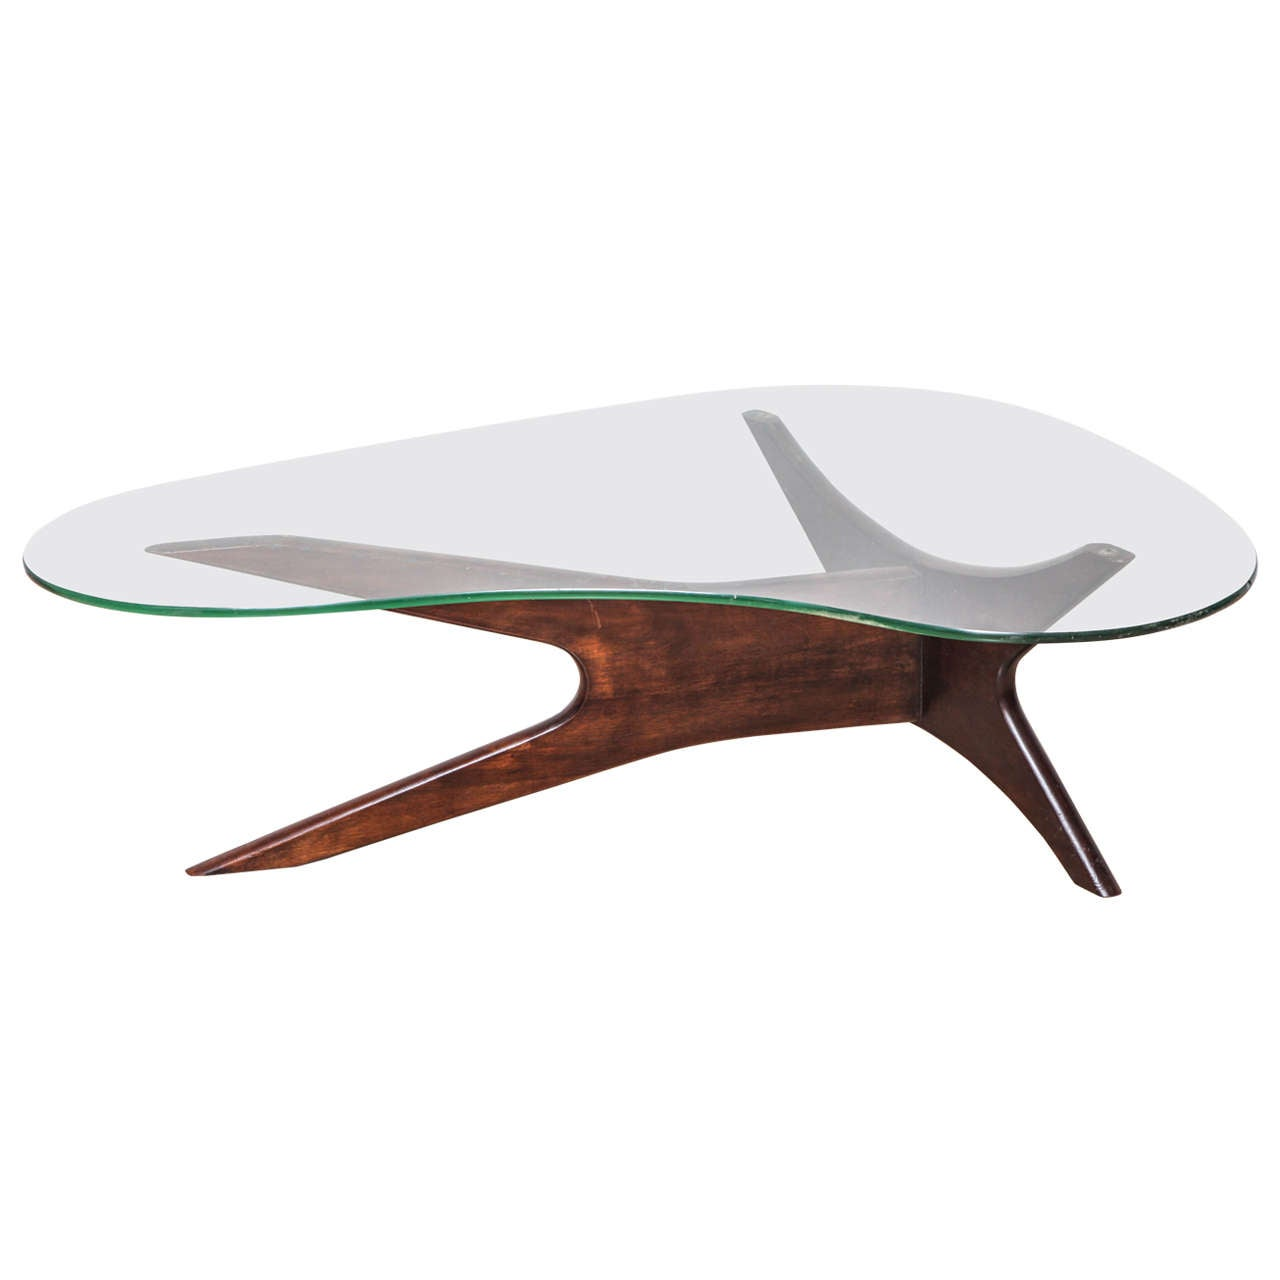 Superior Mid Century Glass Top And Walnut Biomorphic Coffee Table For Sale